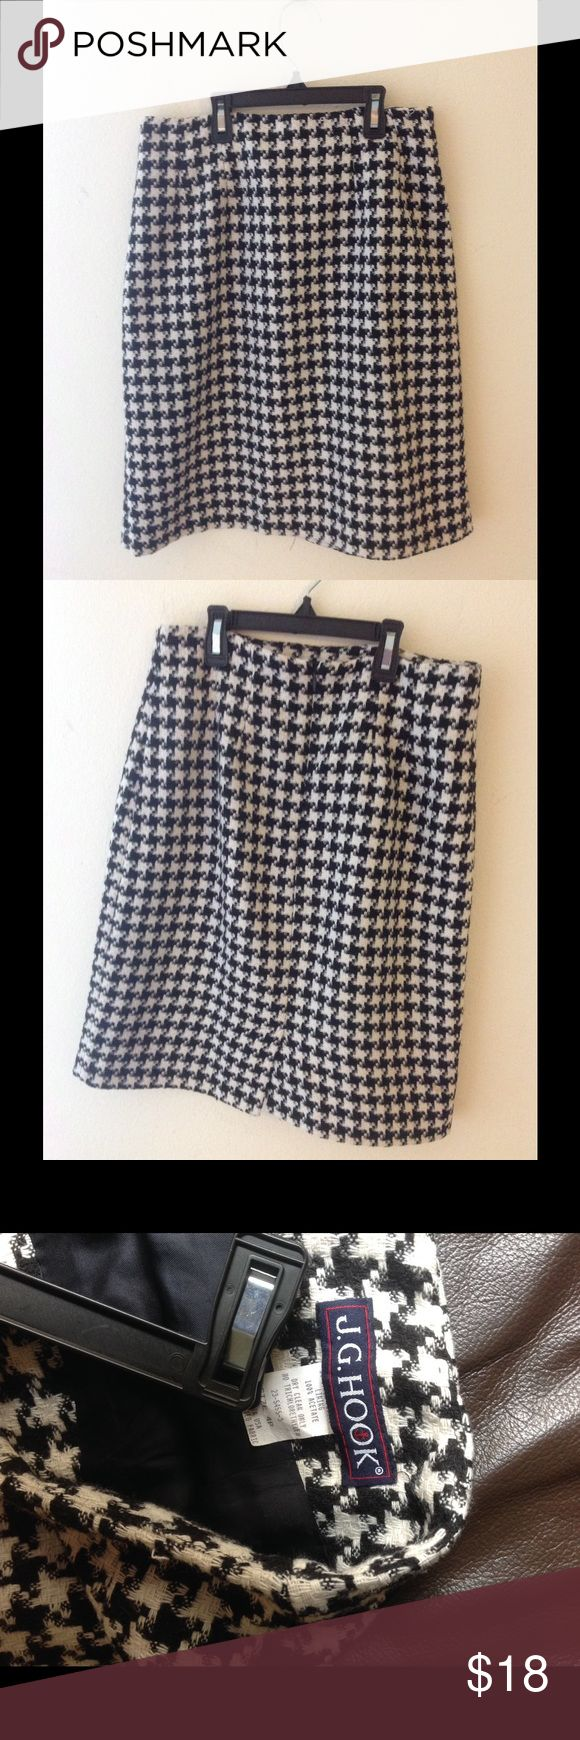 J.G.Hook mini tight skirt size 4P In quite good condition, there are a couple very minor frays as seen in the last pic otherwise it's in very good condition J.G. Hook Skirts Mini